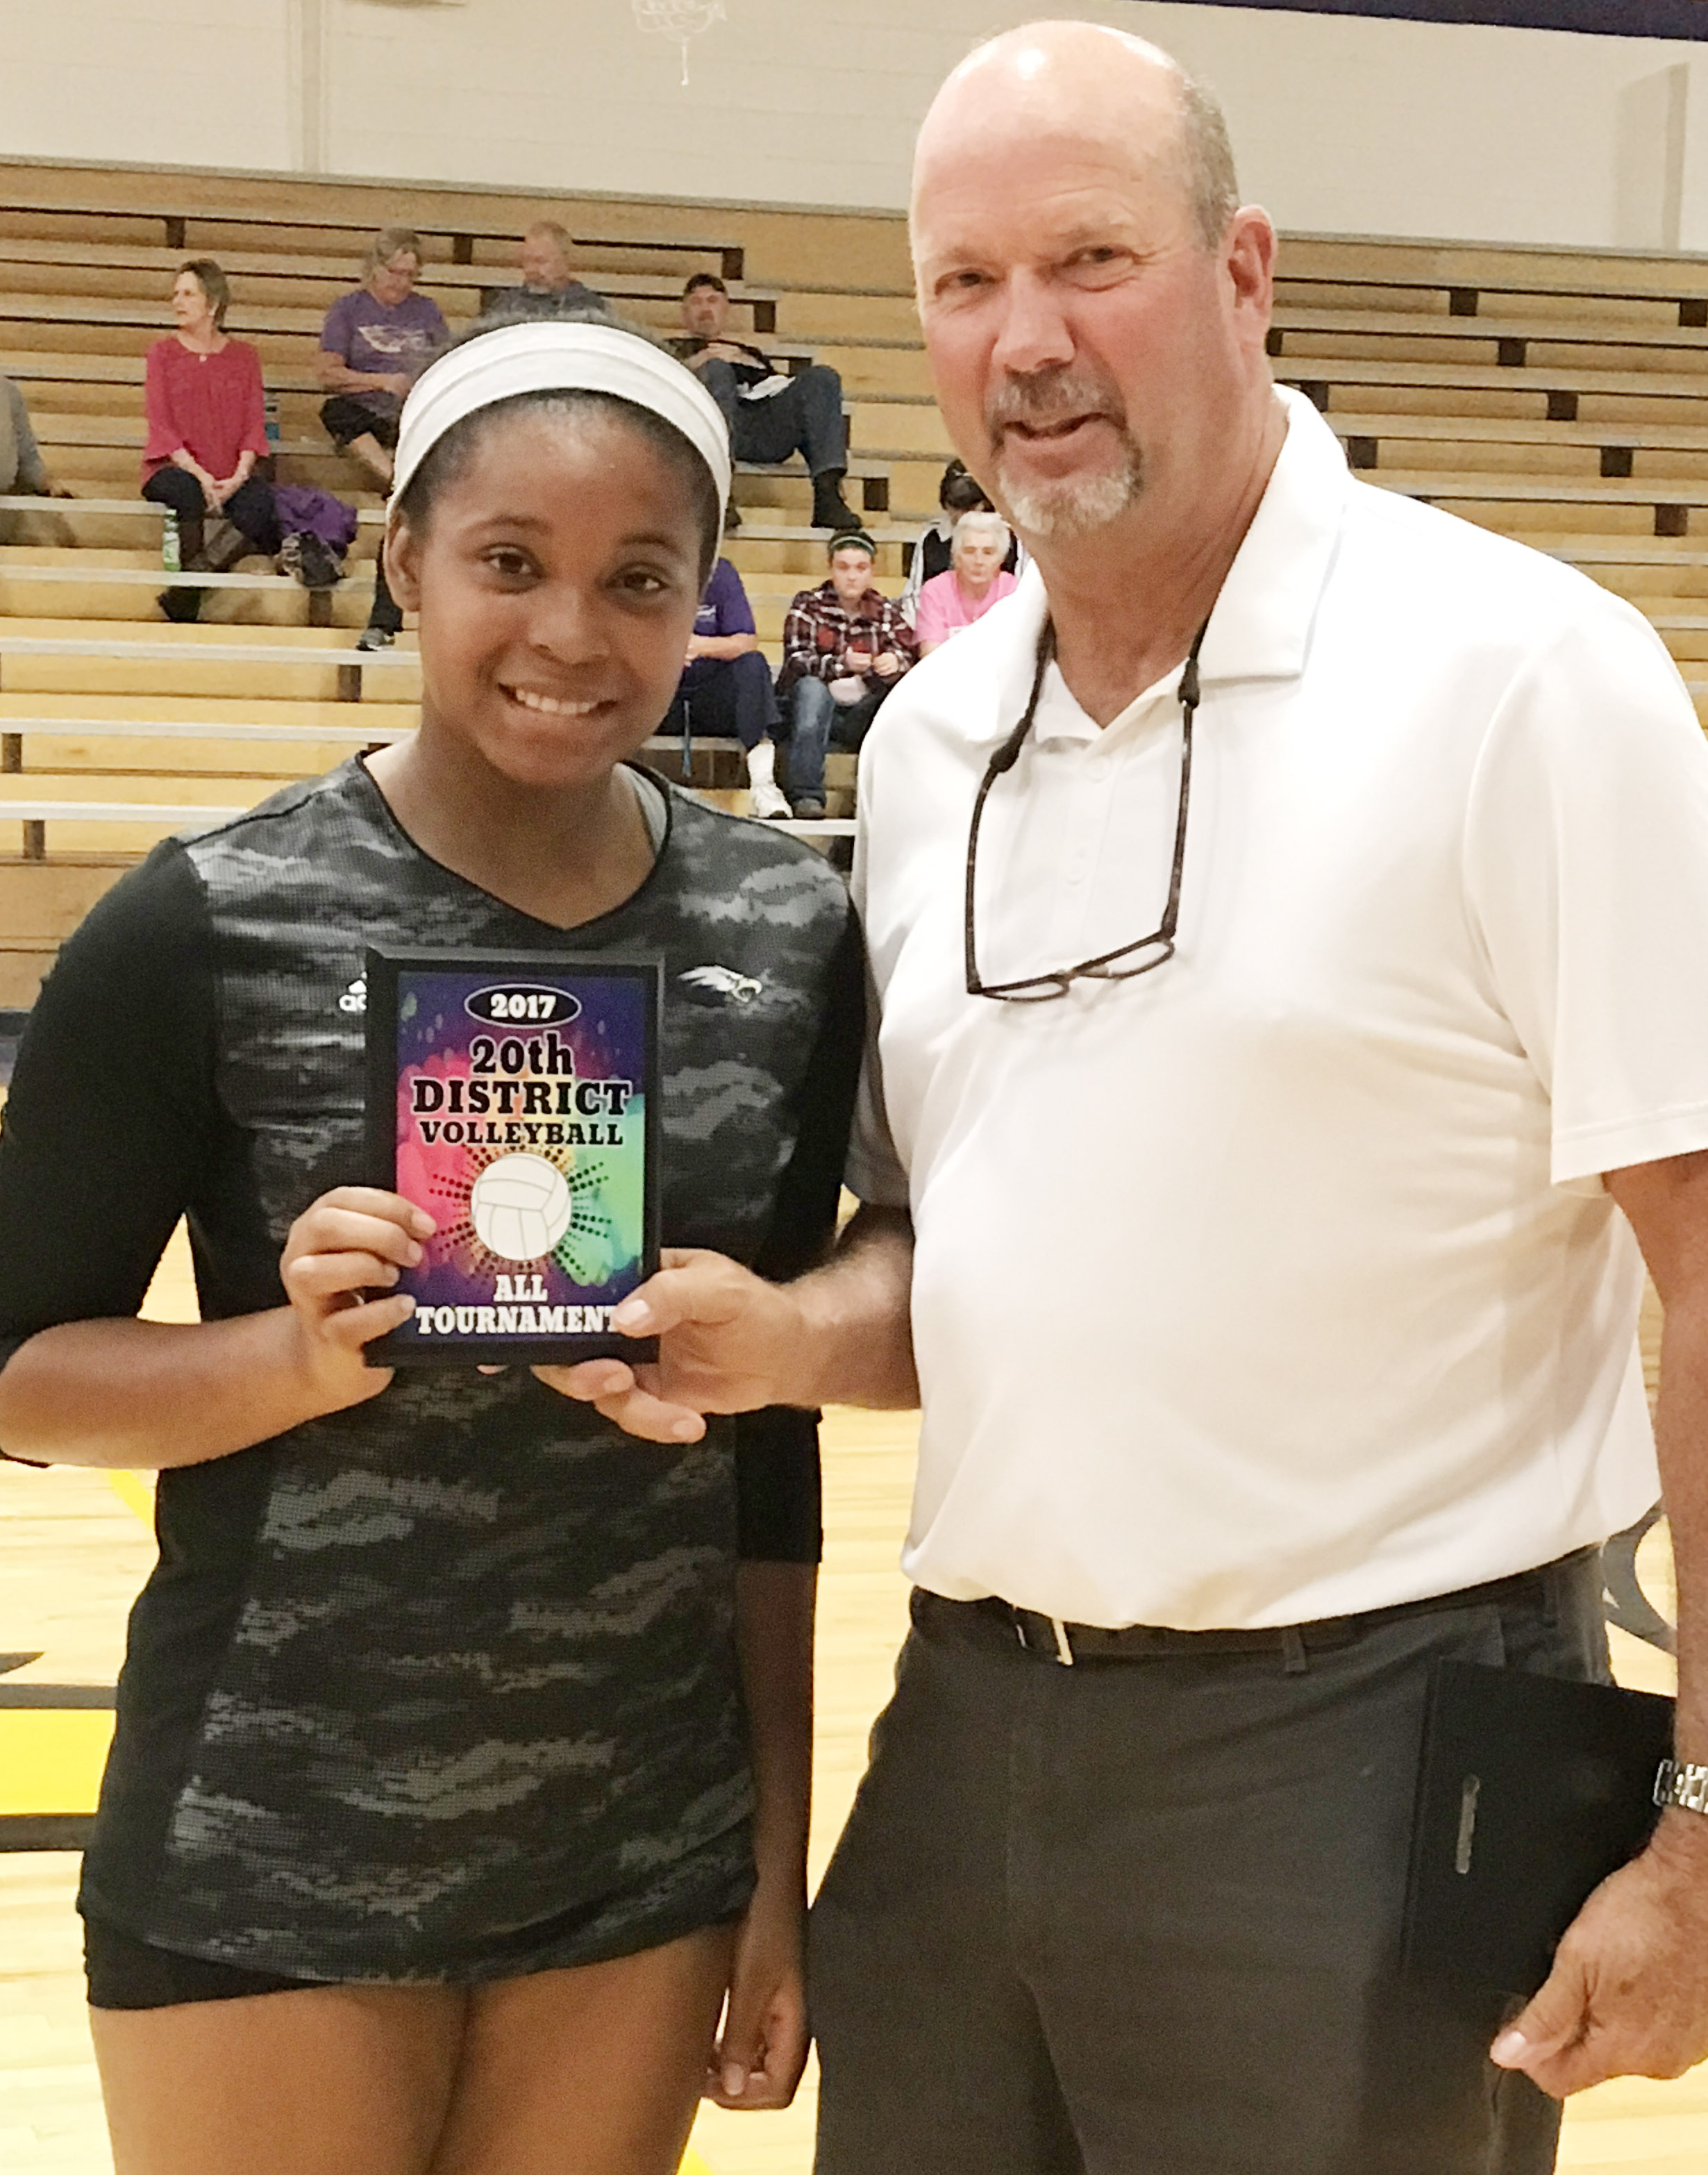 CHS senior Vonnea Smith is named to the all-tournament team. At right is CHS Athletic Director Tim Davis.